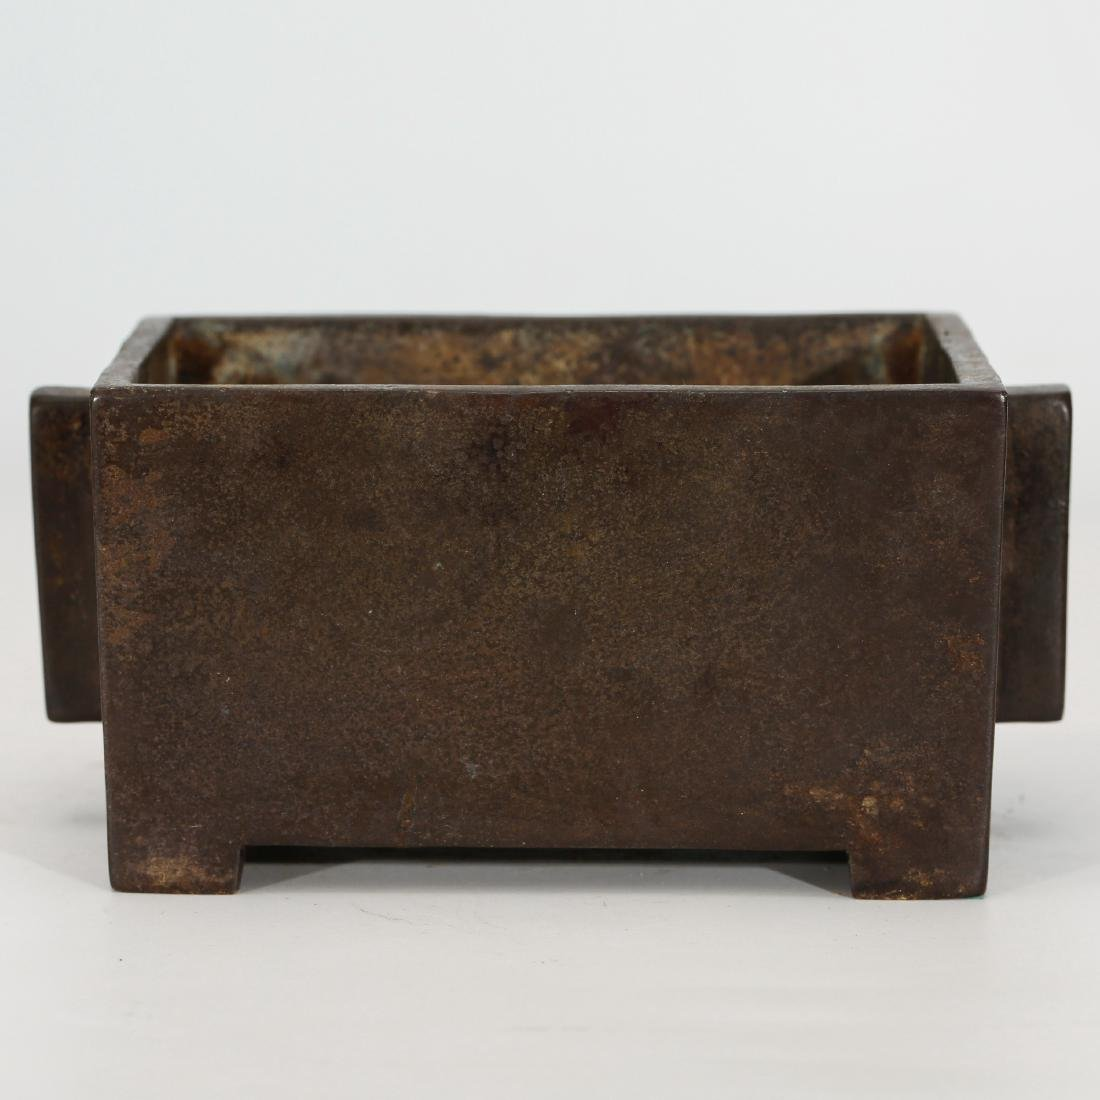 CHINESE RECTANGULAR BRONZE CENSER